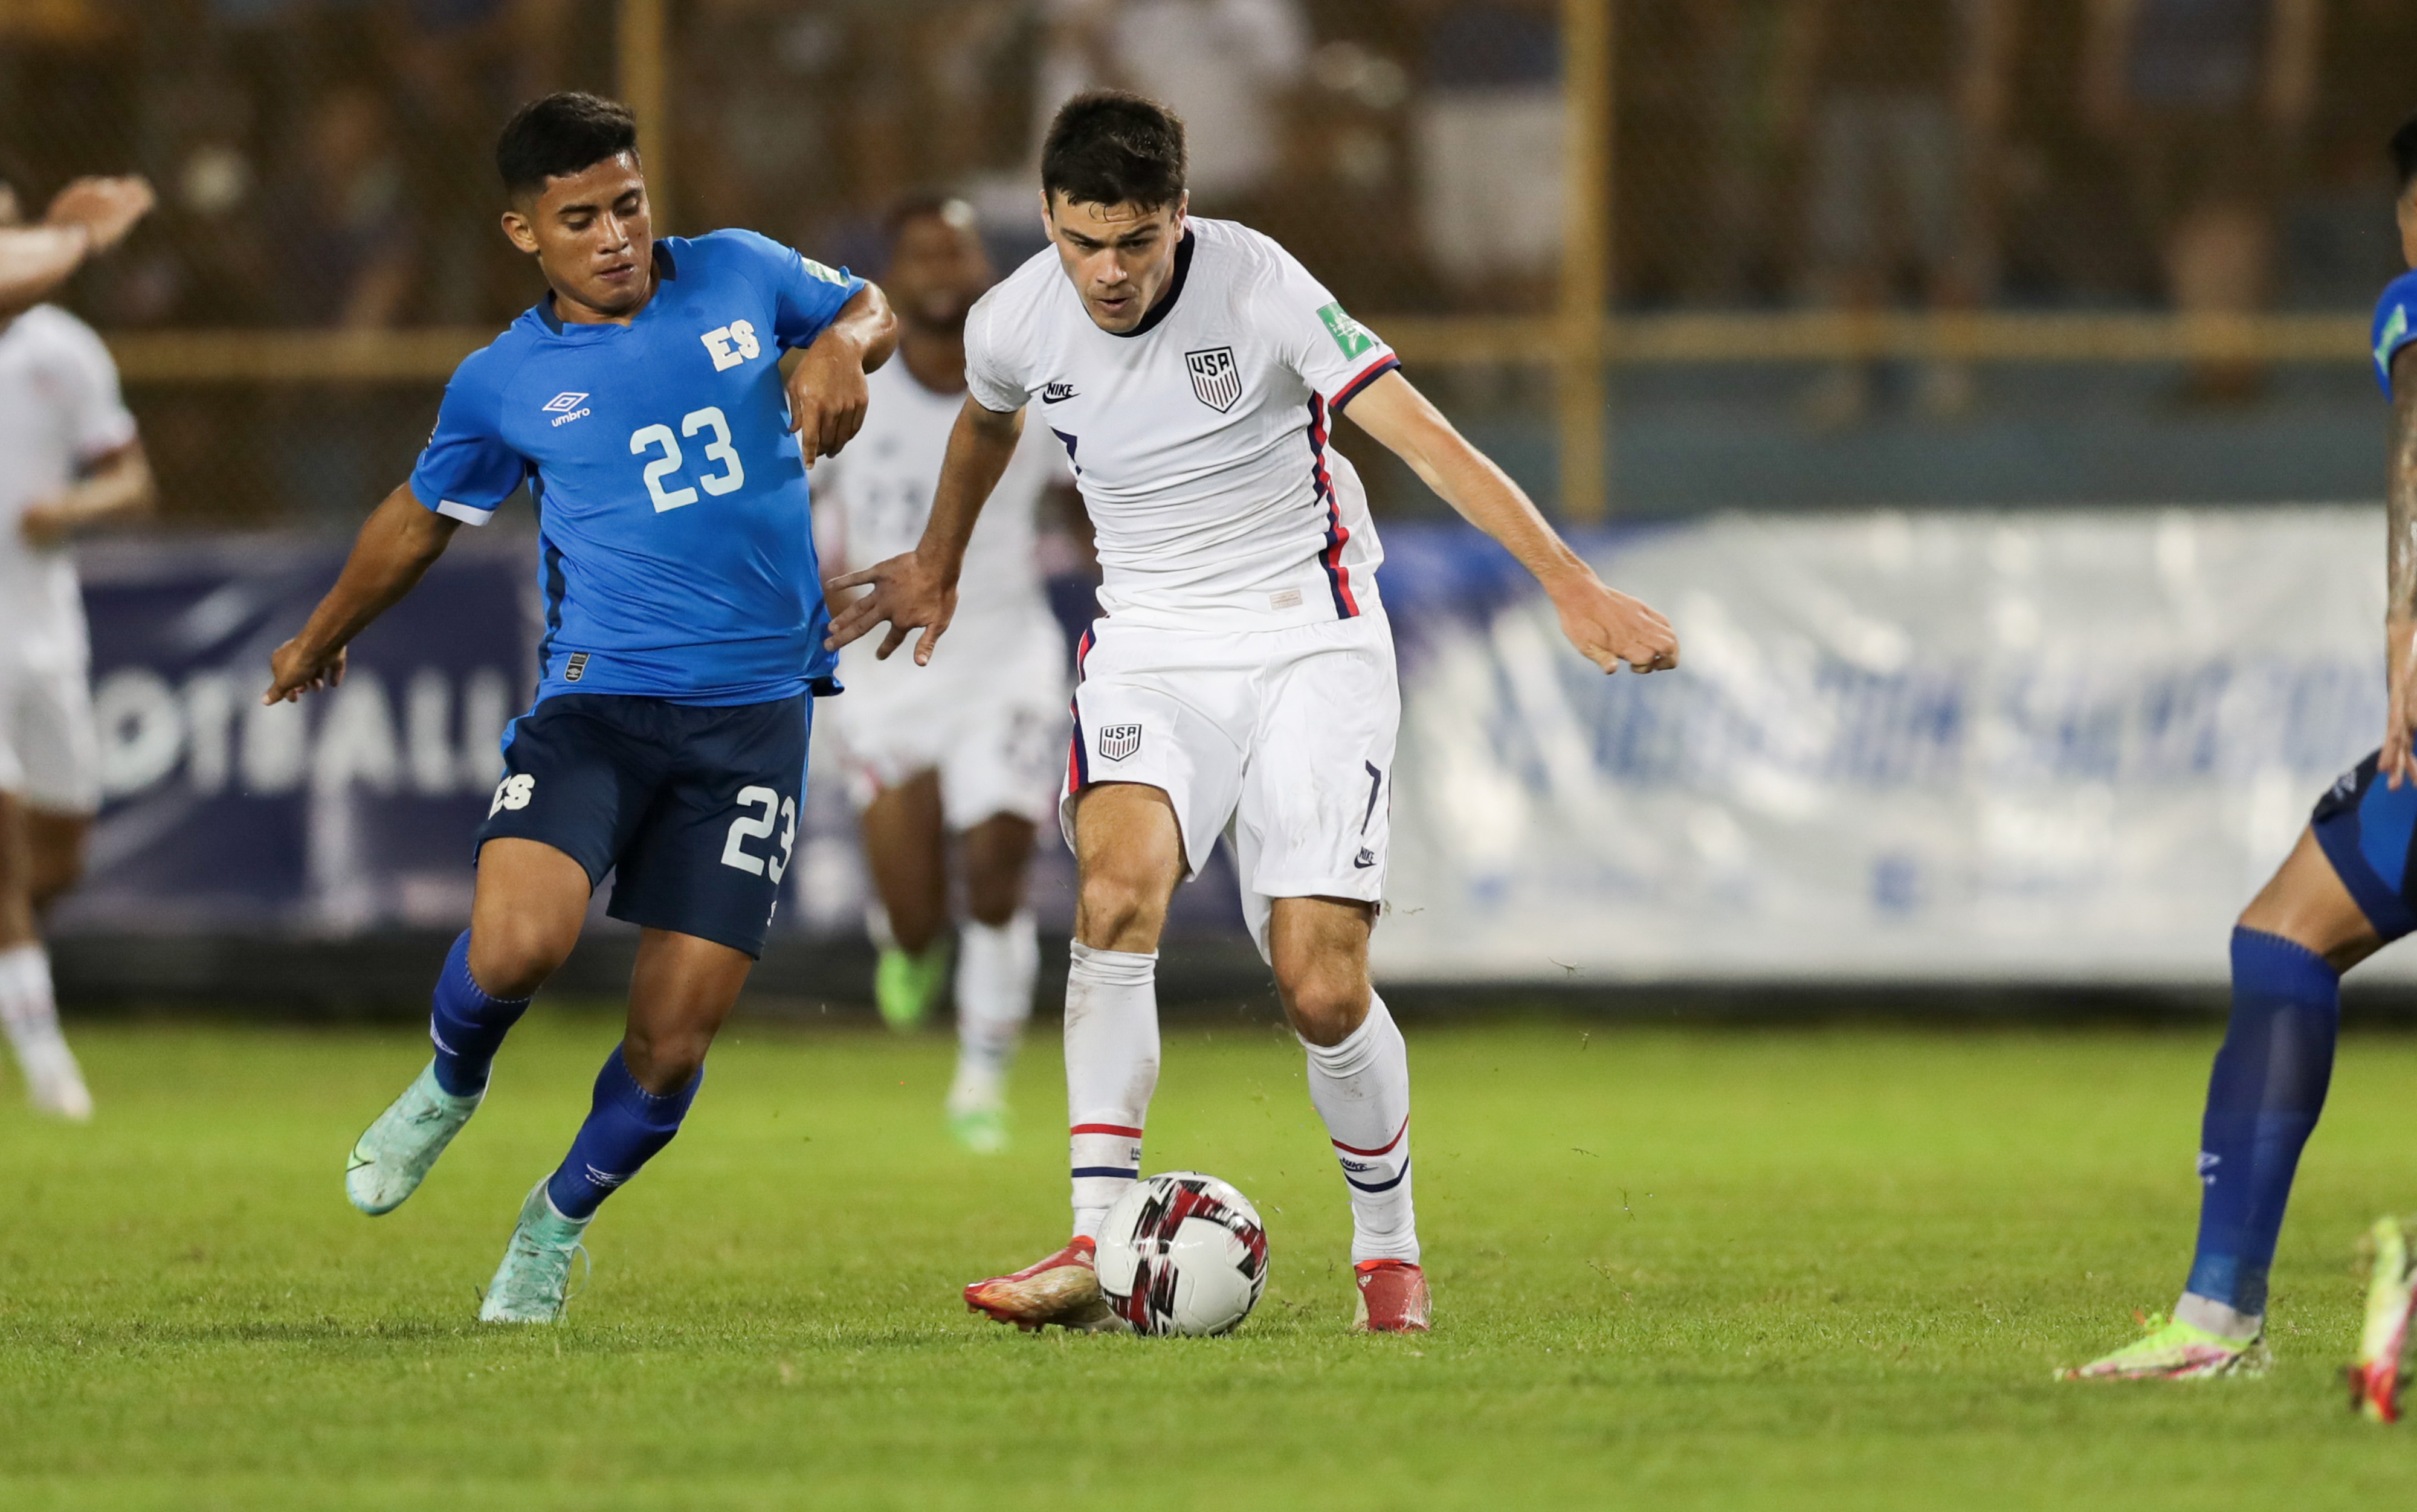 Giovanni Reyna #7 of the United States passes off the ball during a game between El Salvador and USMNT at Estadio Cuscatlán on September 2, 2021 in San Salvador, El Salvador.